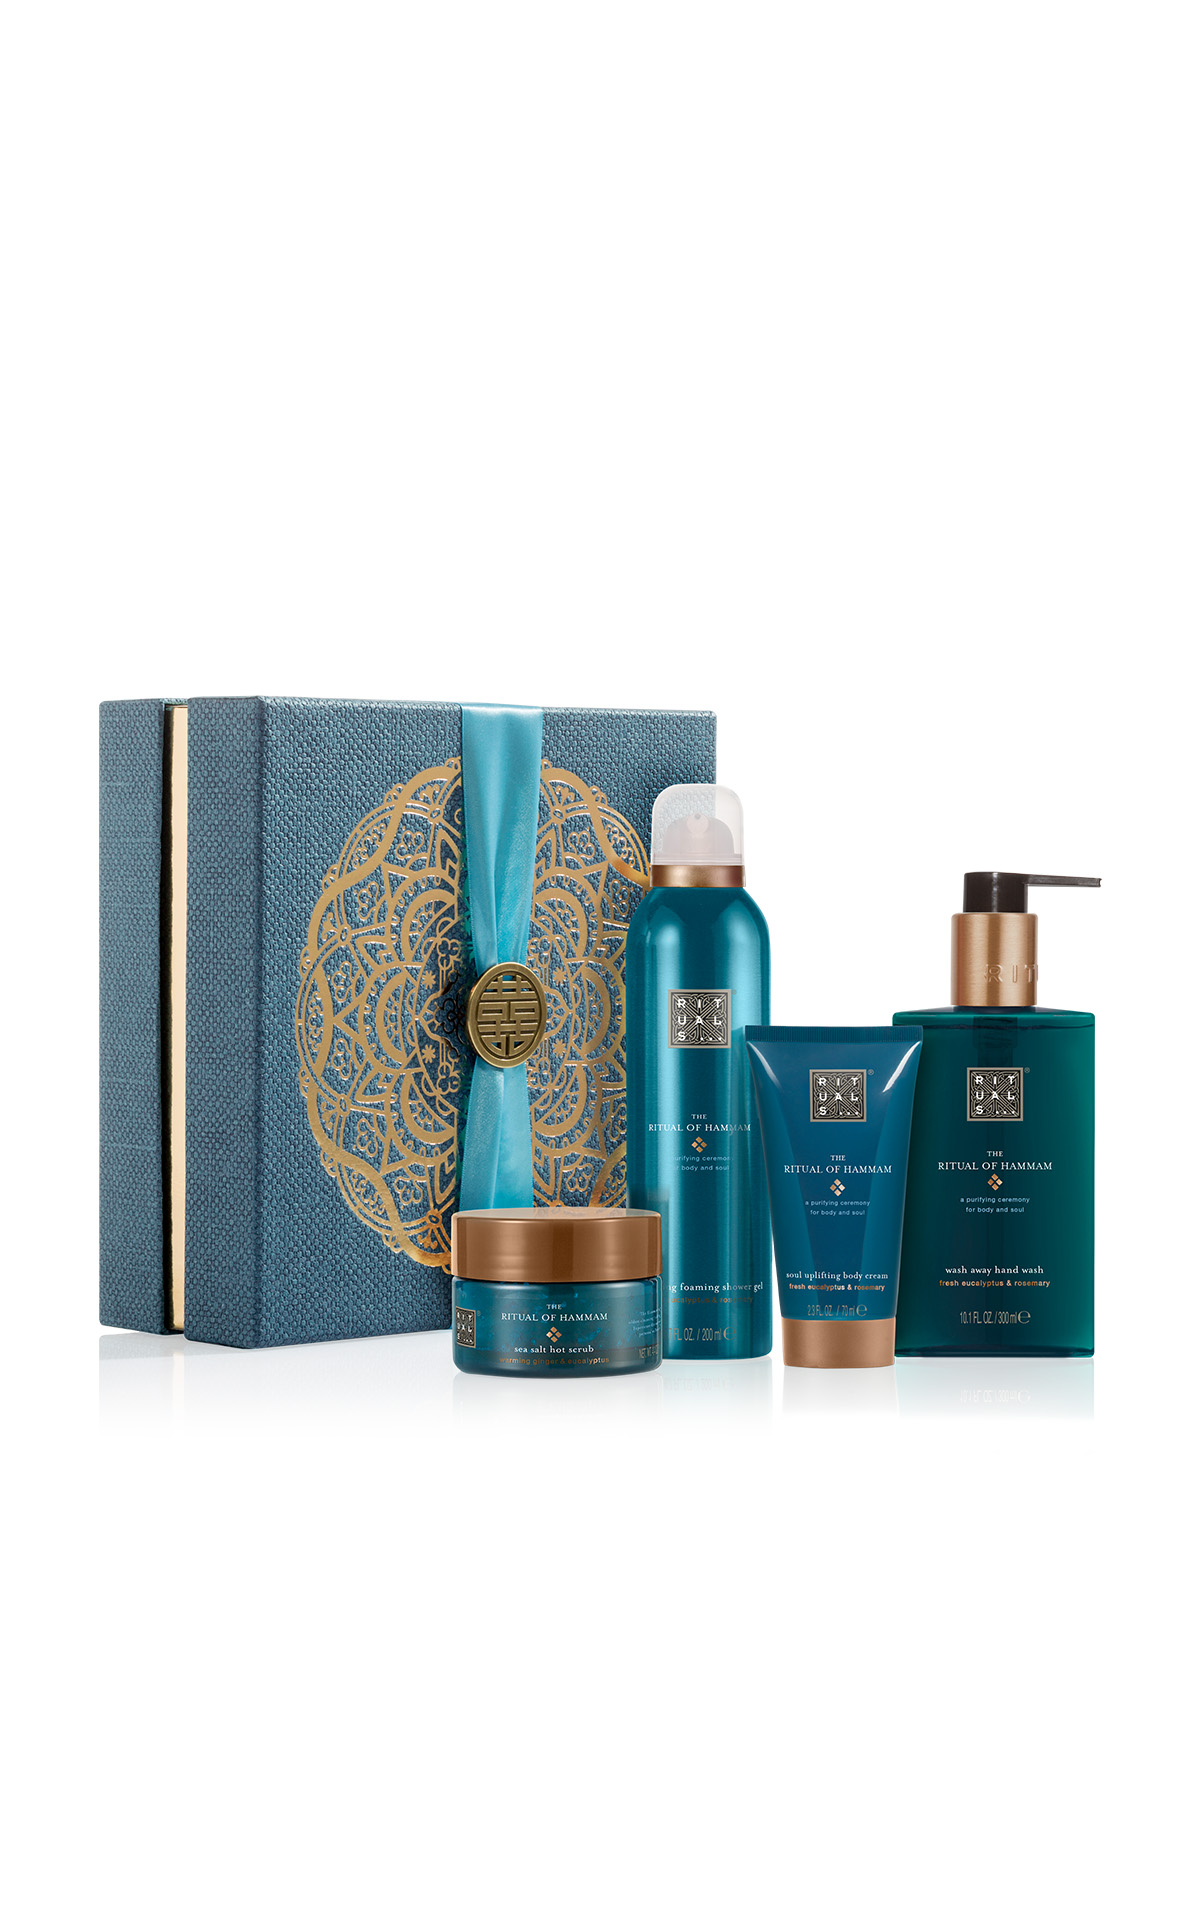 Rituals The ritual of hammam giftset (medium) from Bicester Village